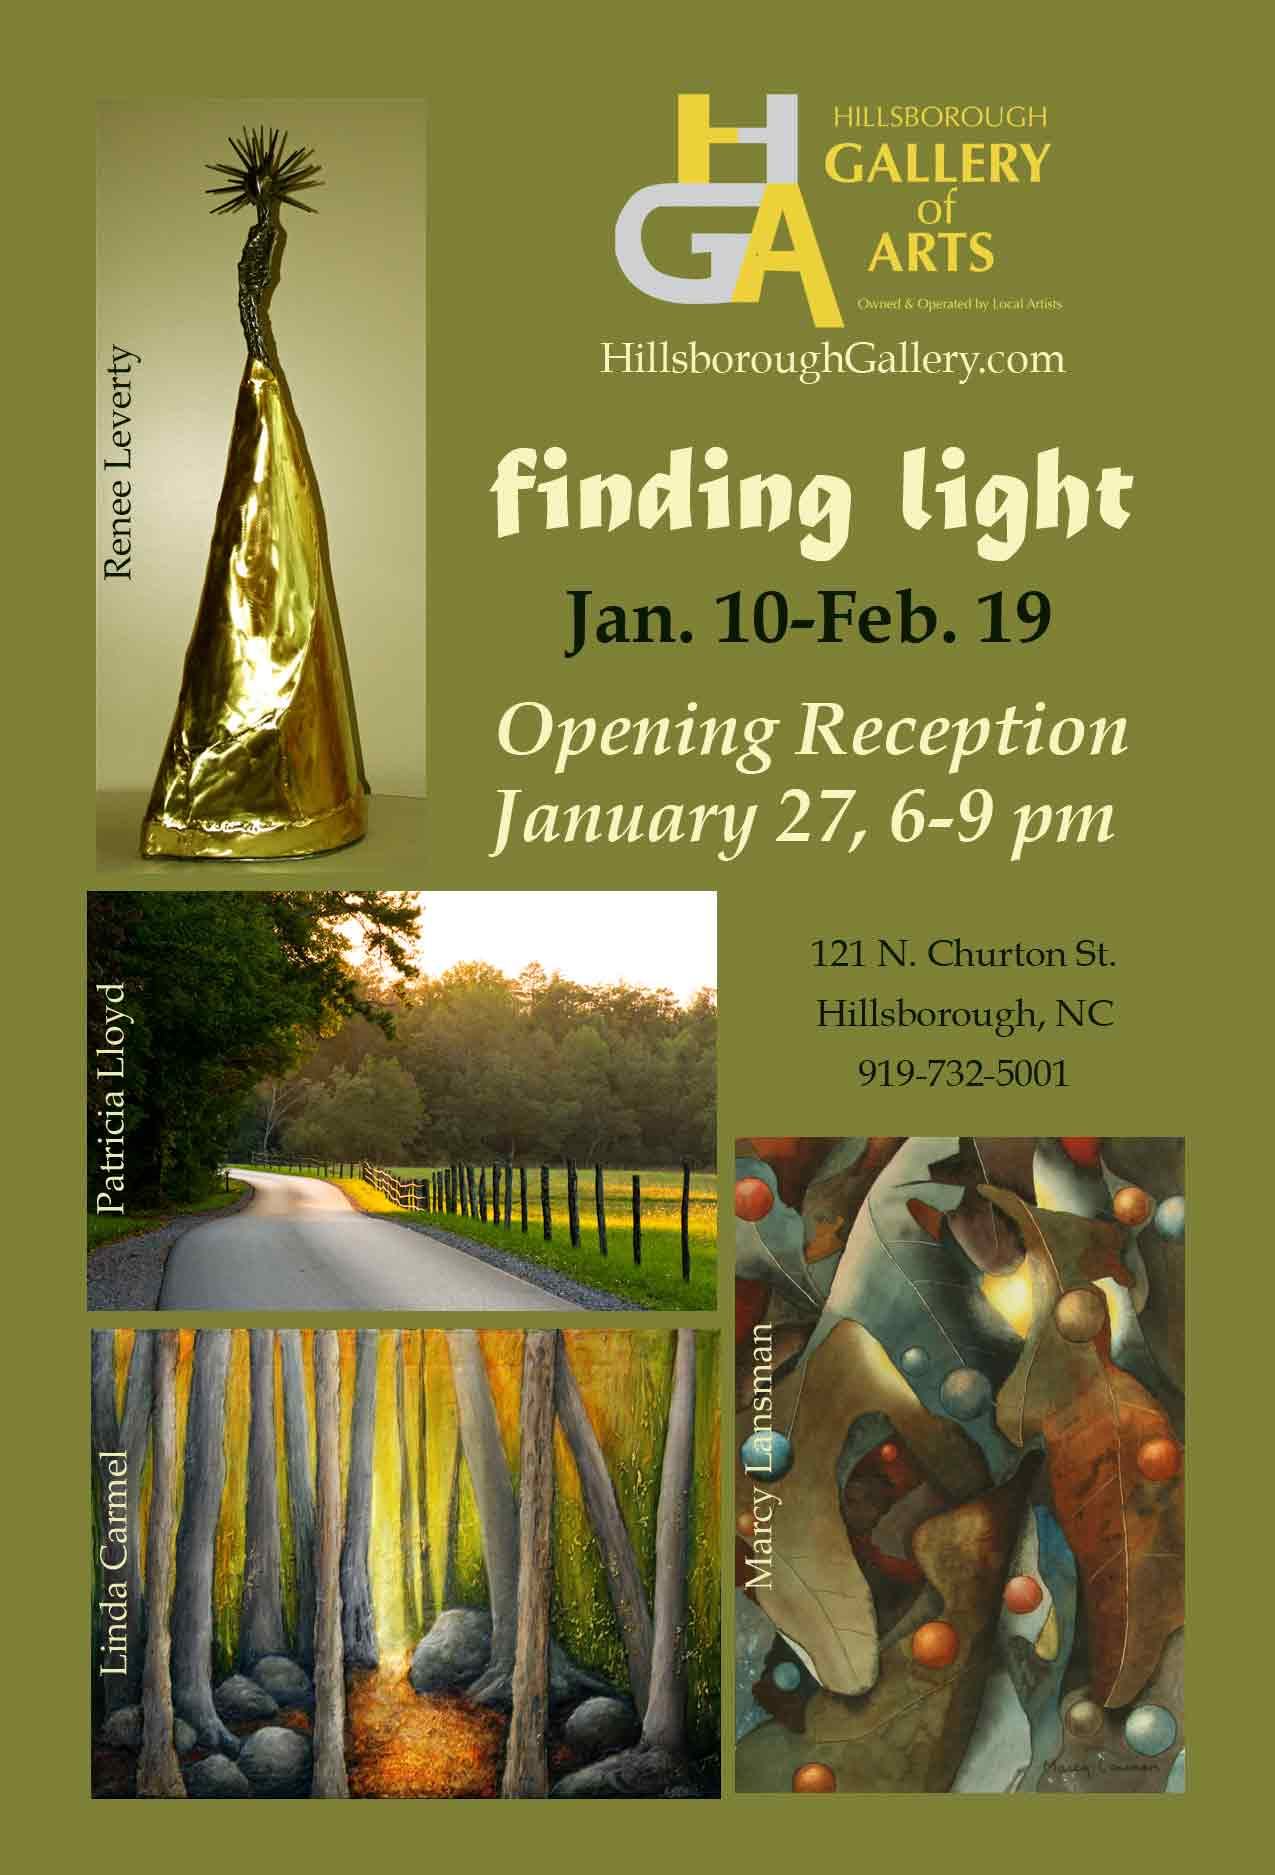 FINDING LIGHT - Hillsborough Gallery of Arts